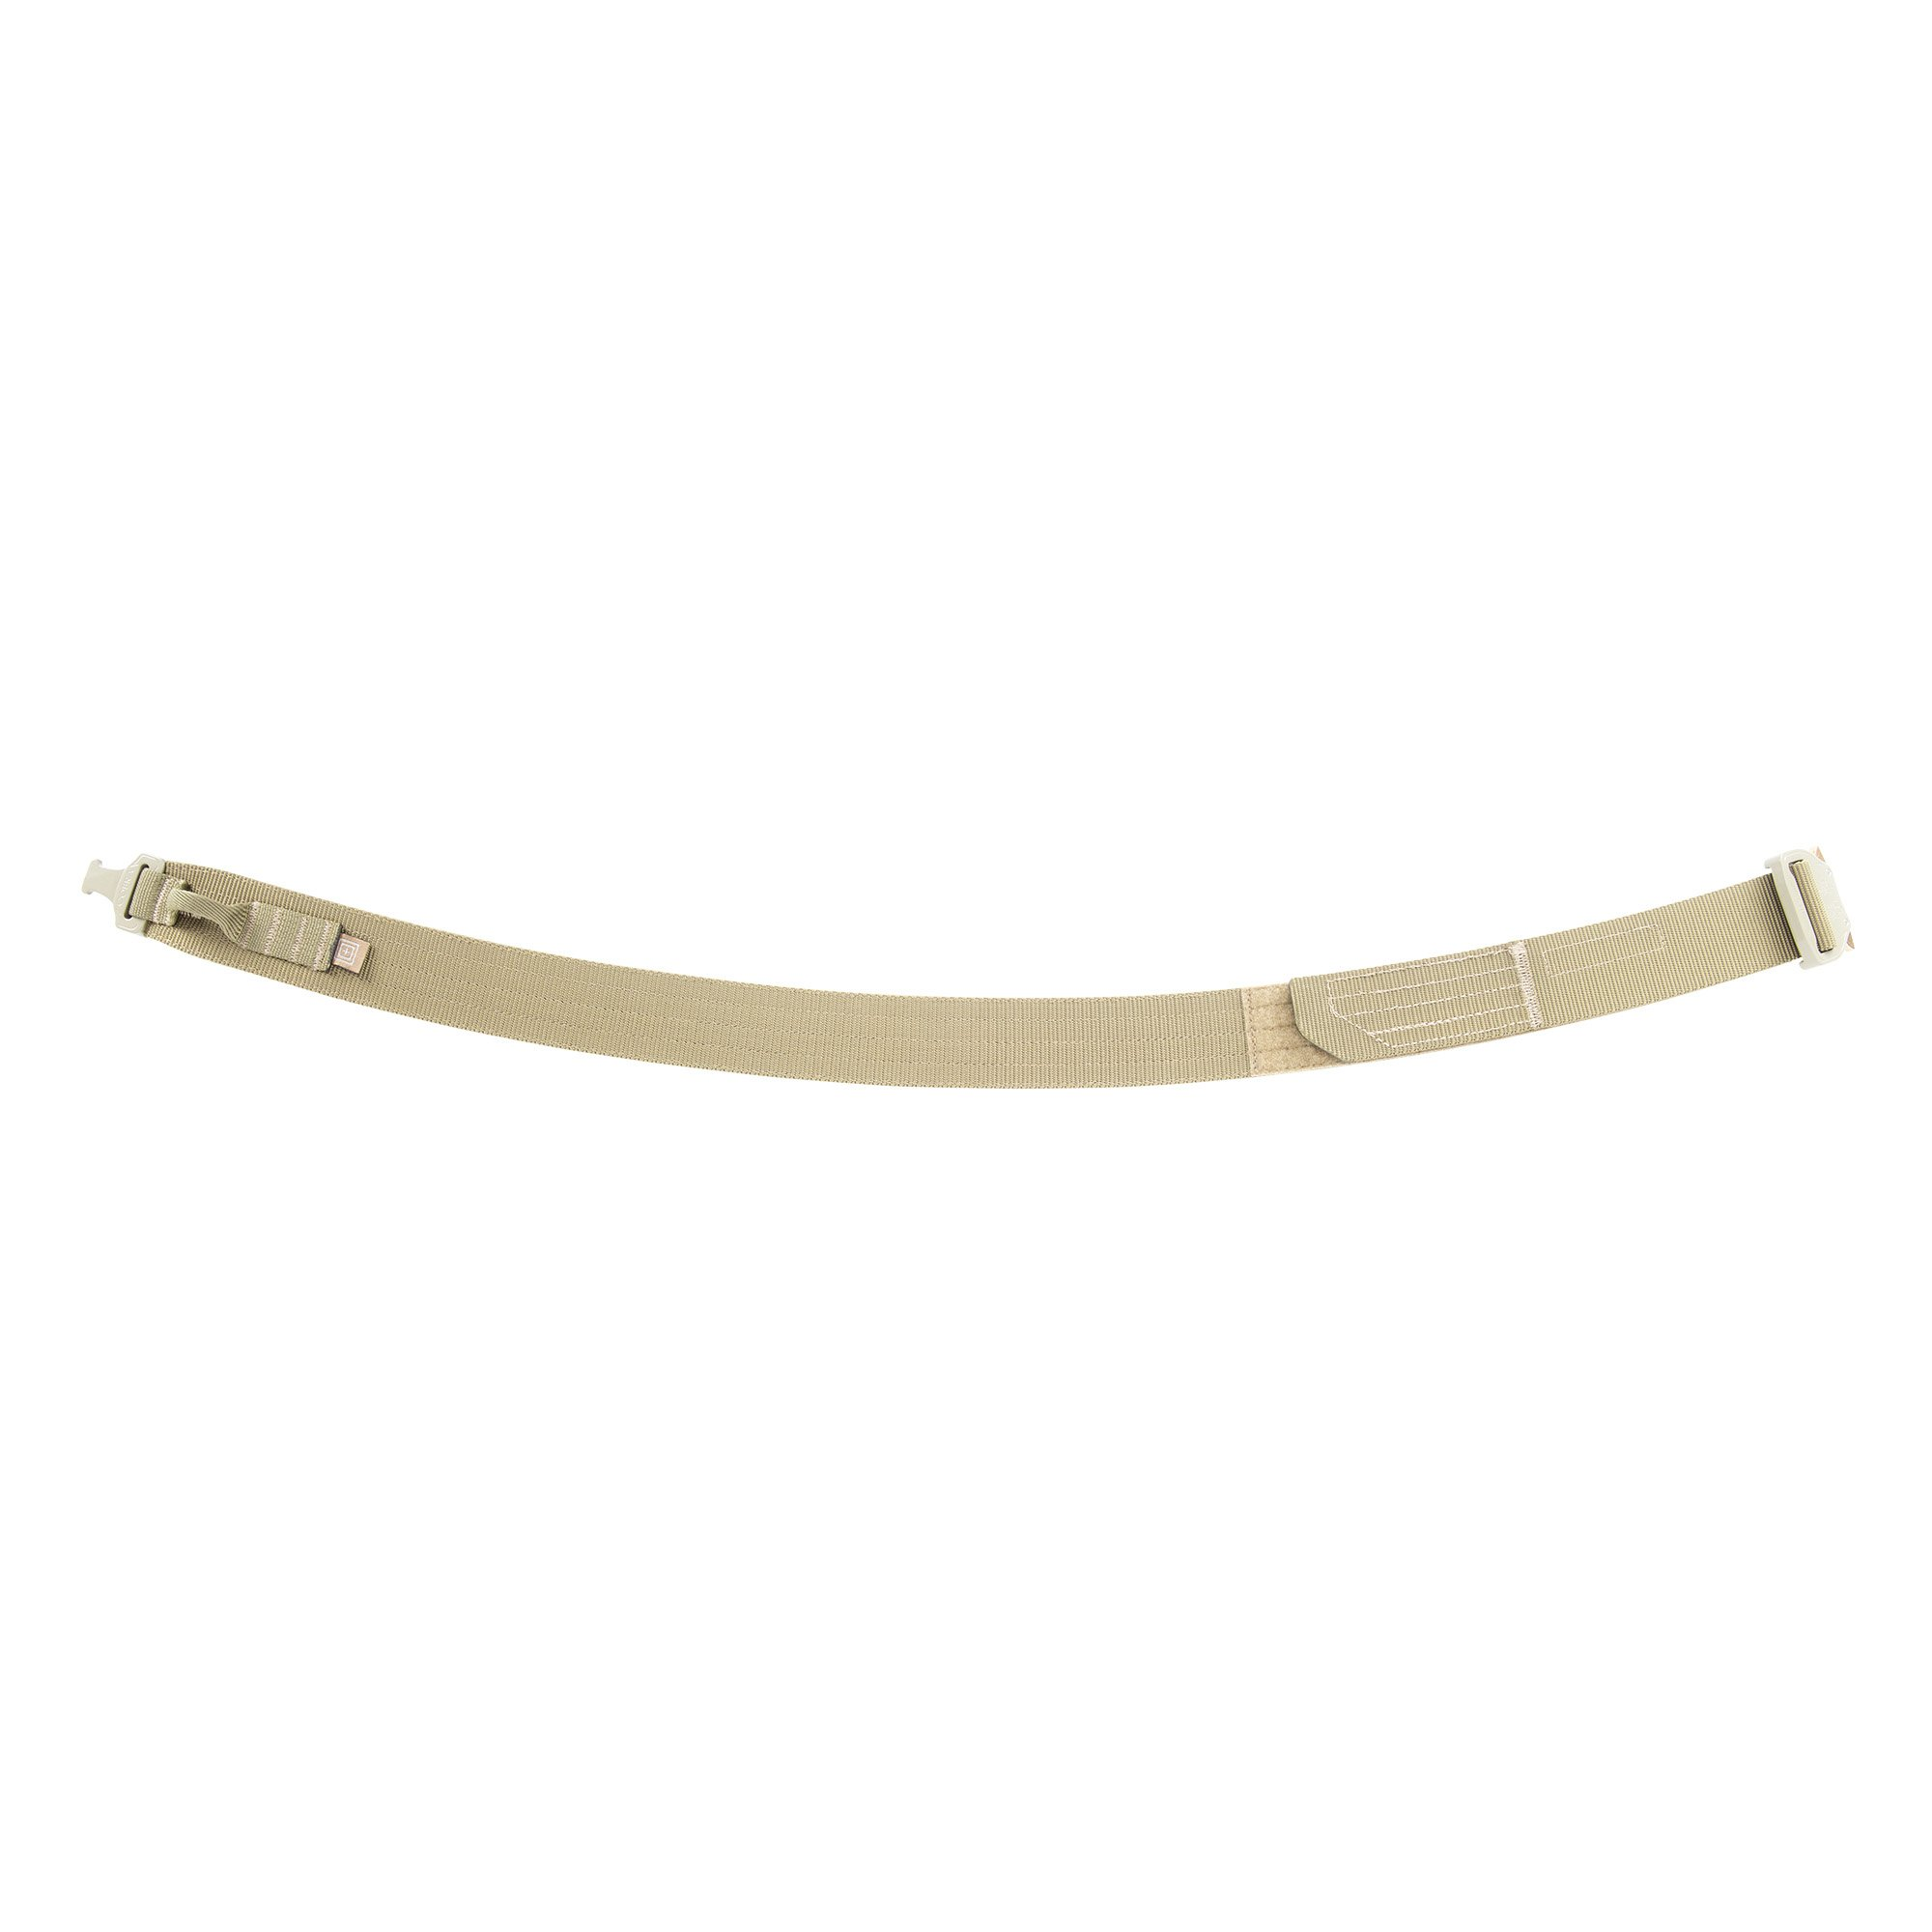 MAVERICK ASSAULTERS BELT – Sandstone